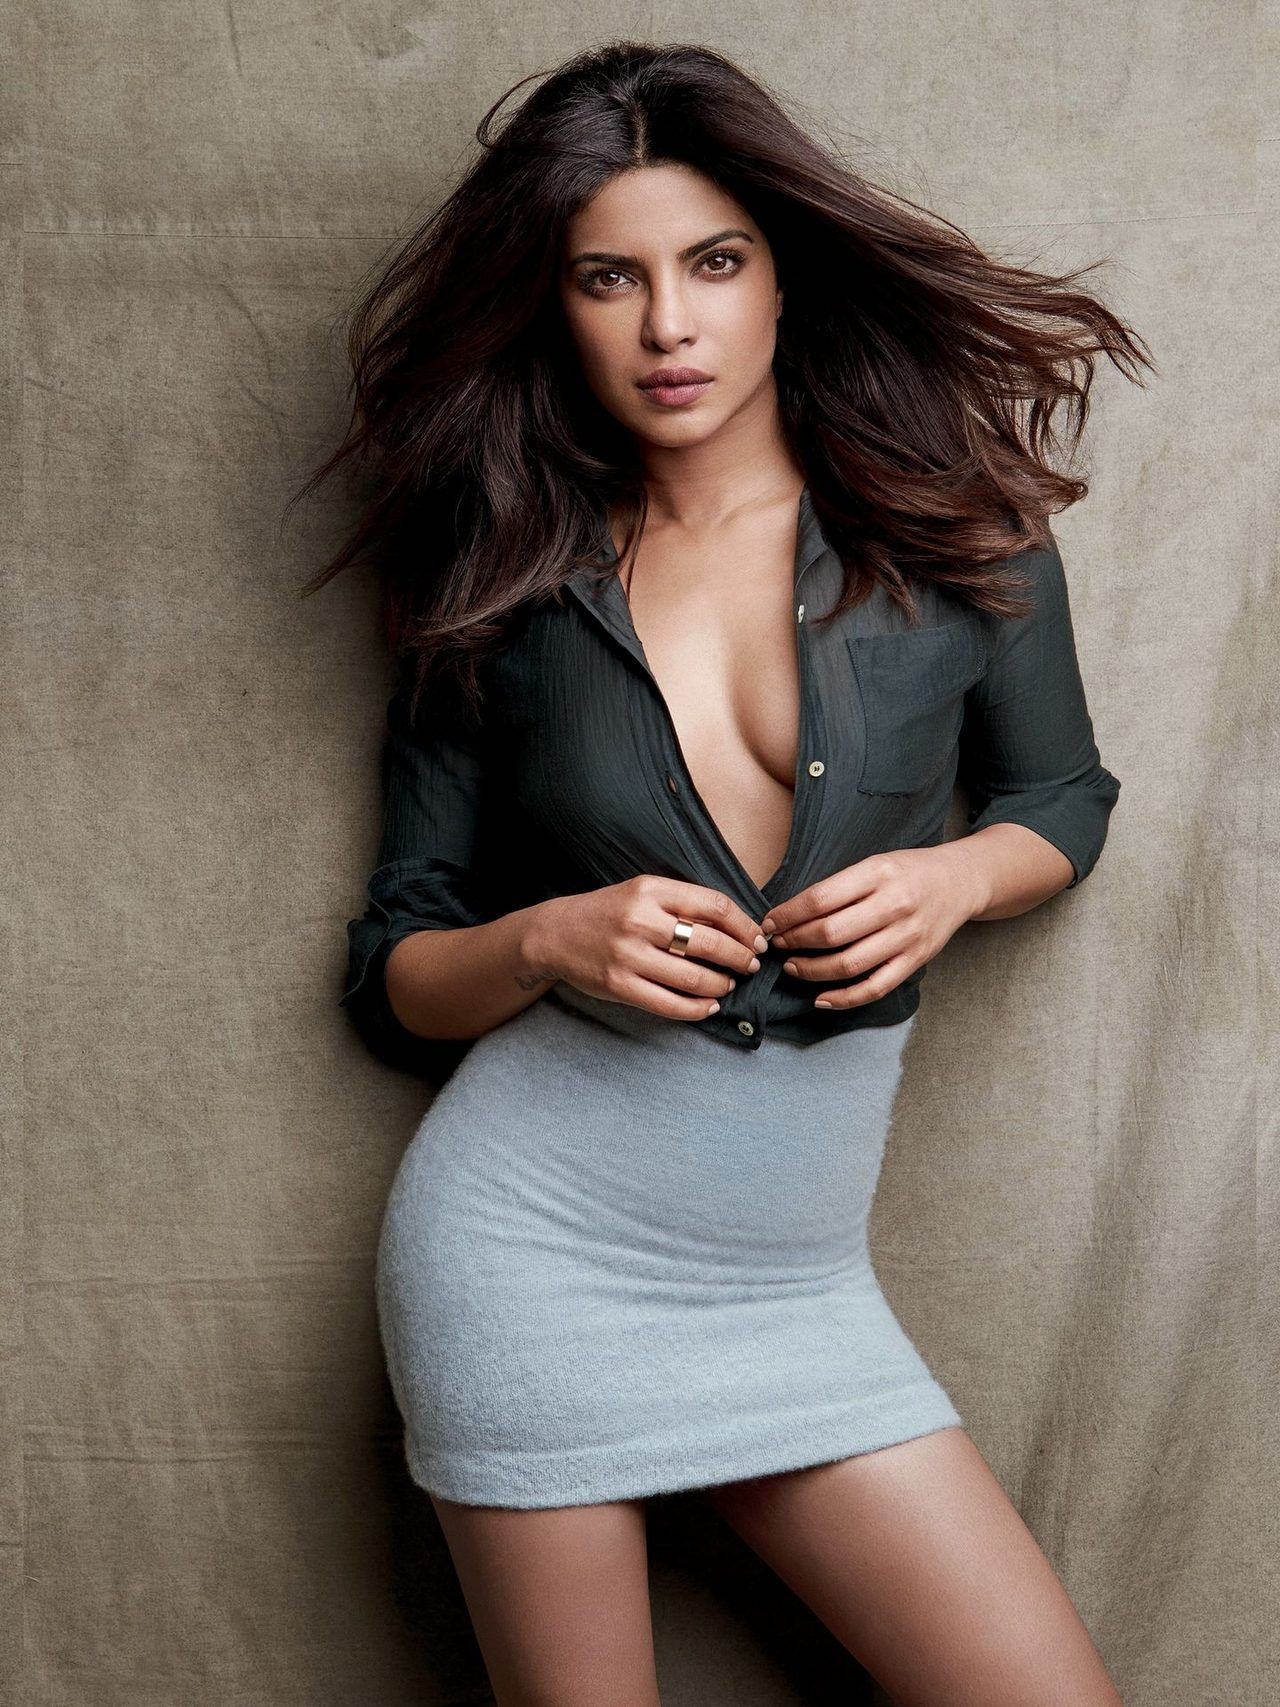 Fucking Photos Of Priyanka Chopra sex images | priyanka chopra in blouse and tight skirt